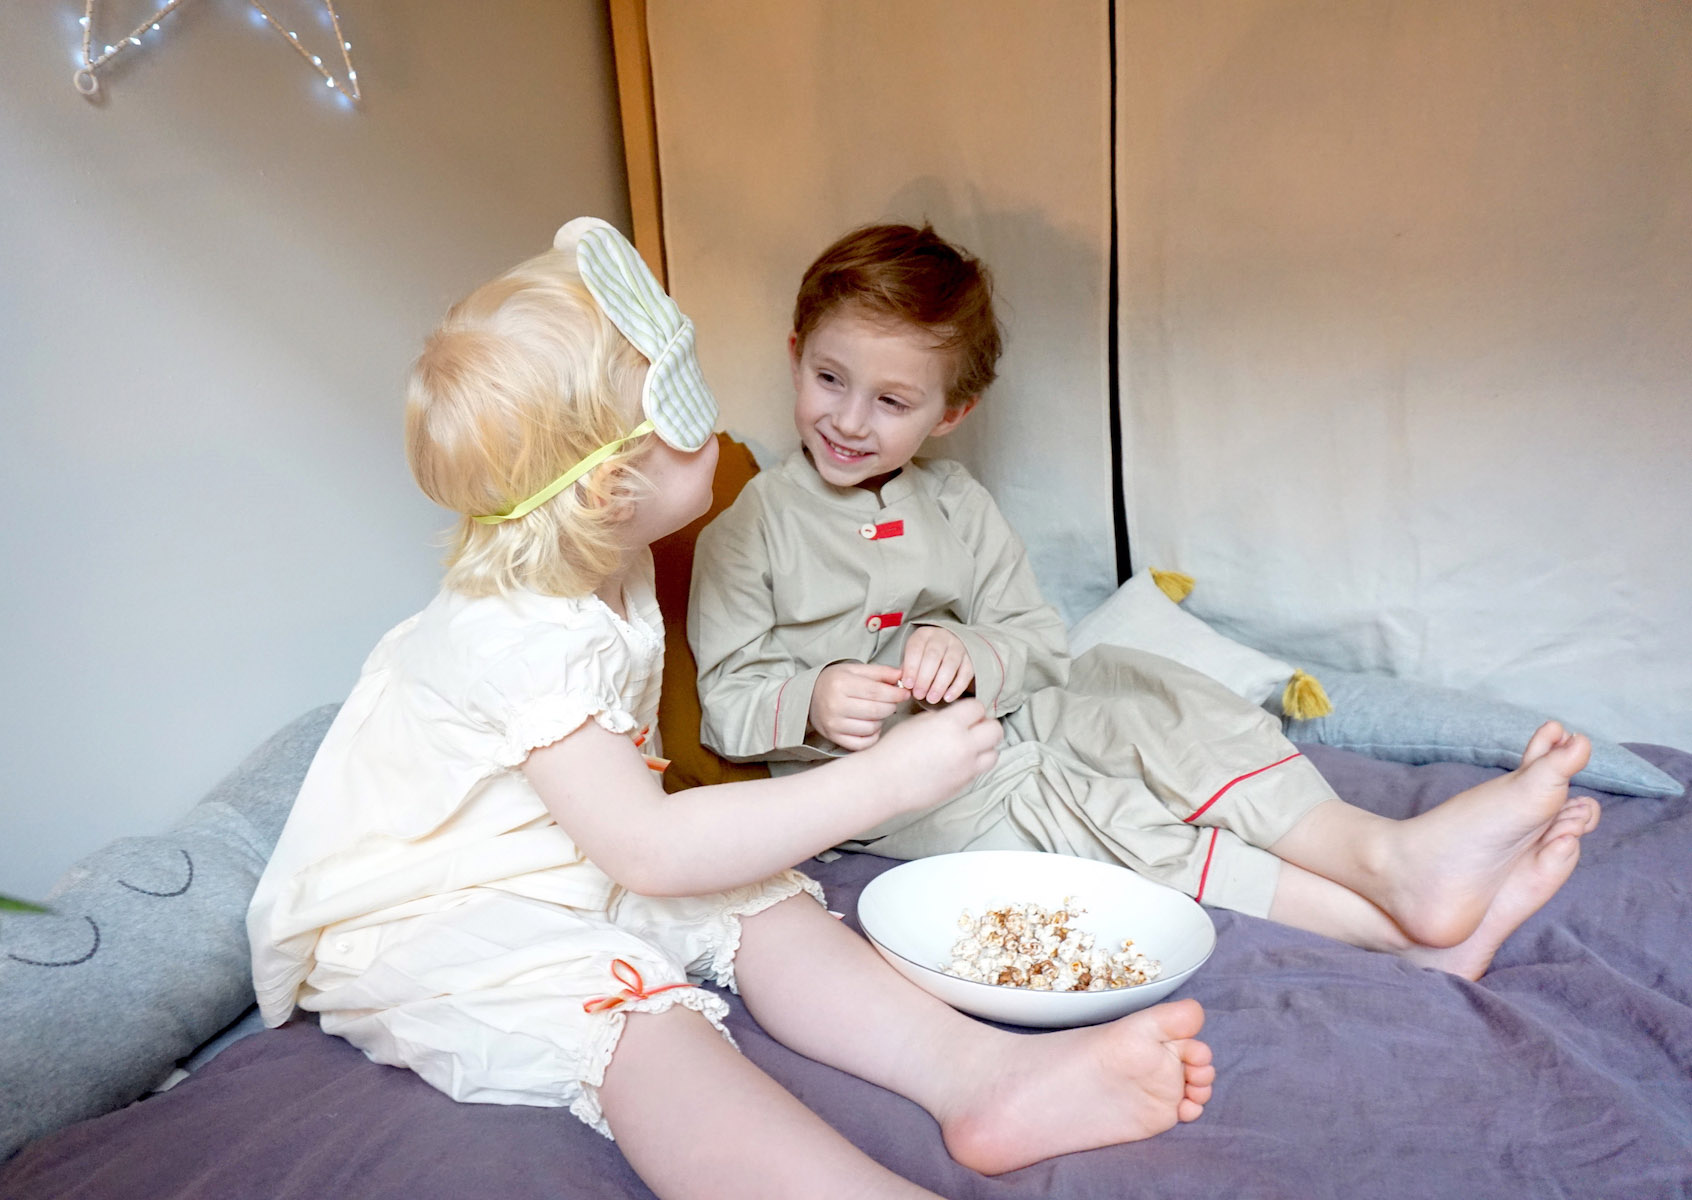 Pepe&Nika Celebration of first Pajama Party with beautiful nightwear by kidslabel Atticus and Gilda